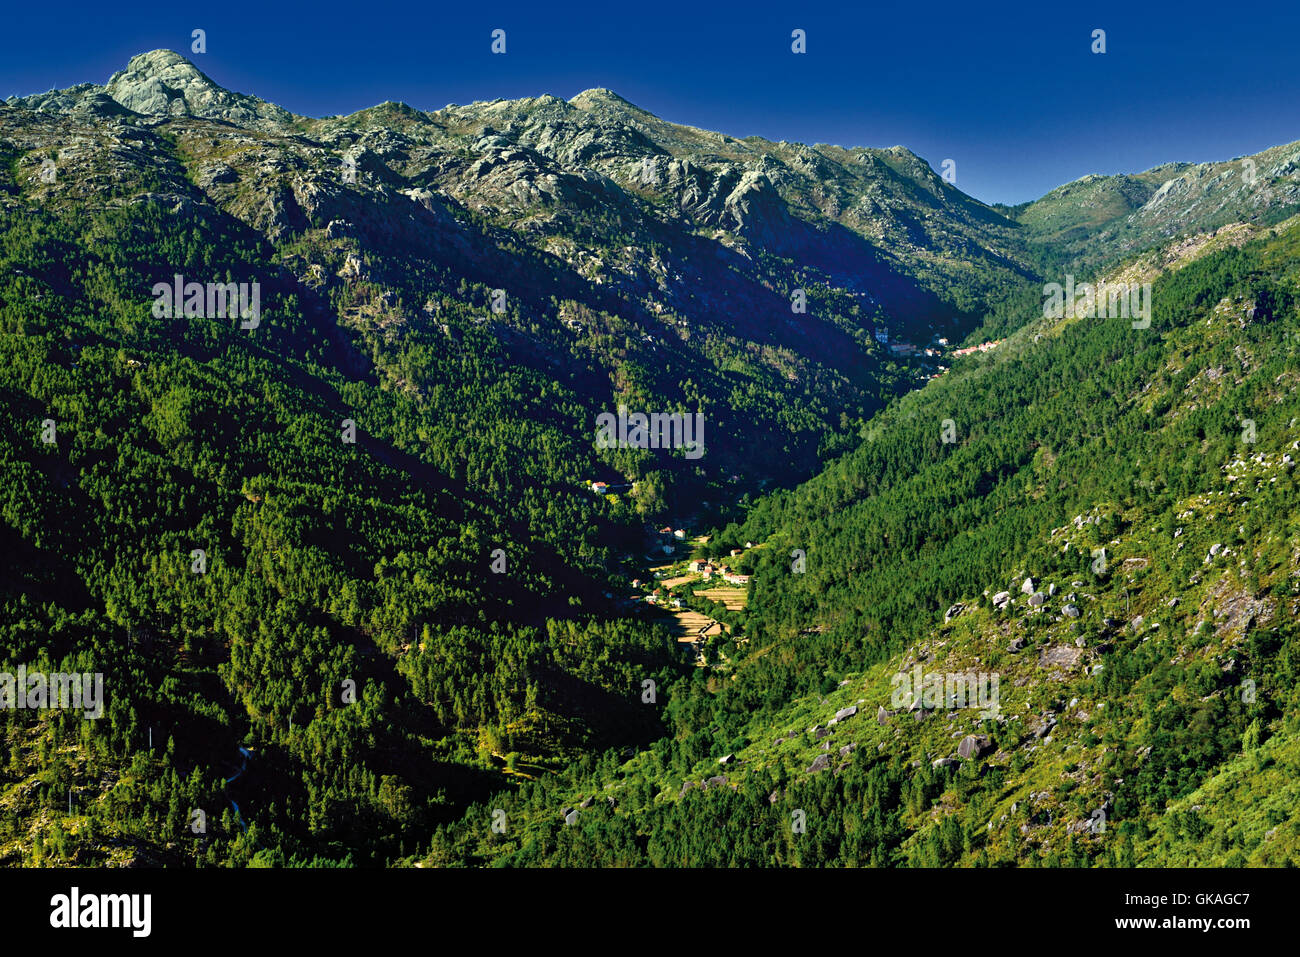 Portugal, Minho: Mountains and green valley in the National Park Peneda Geres - Stock Image